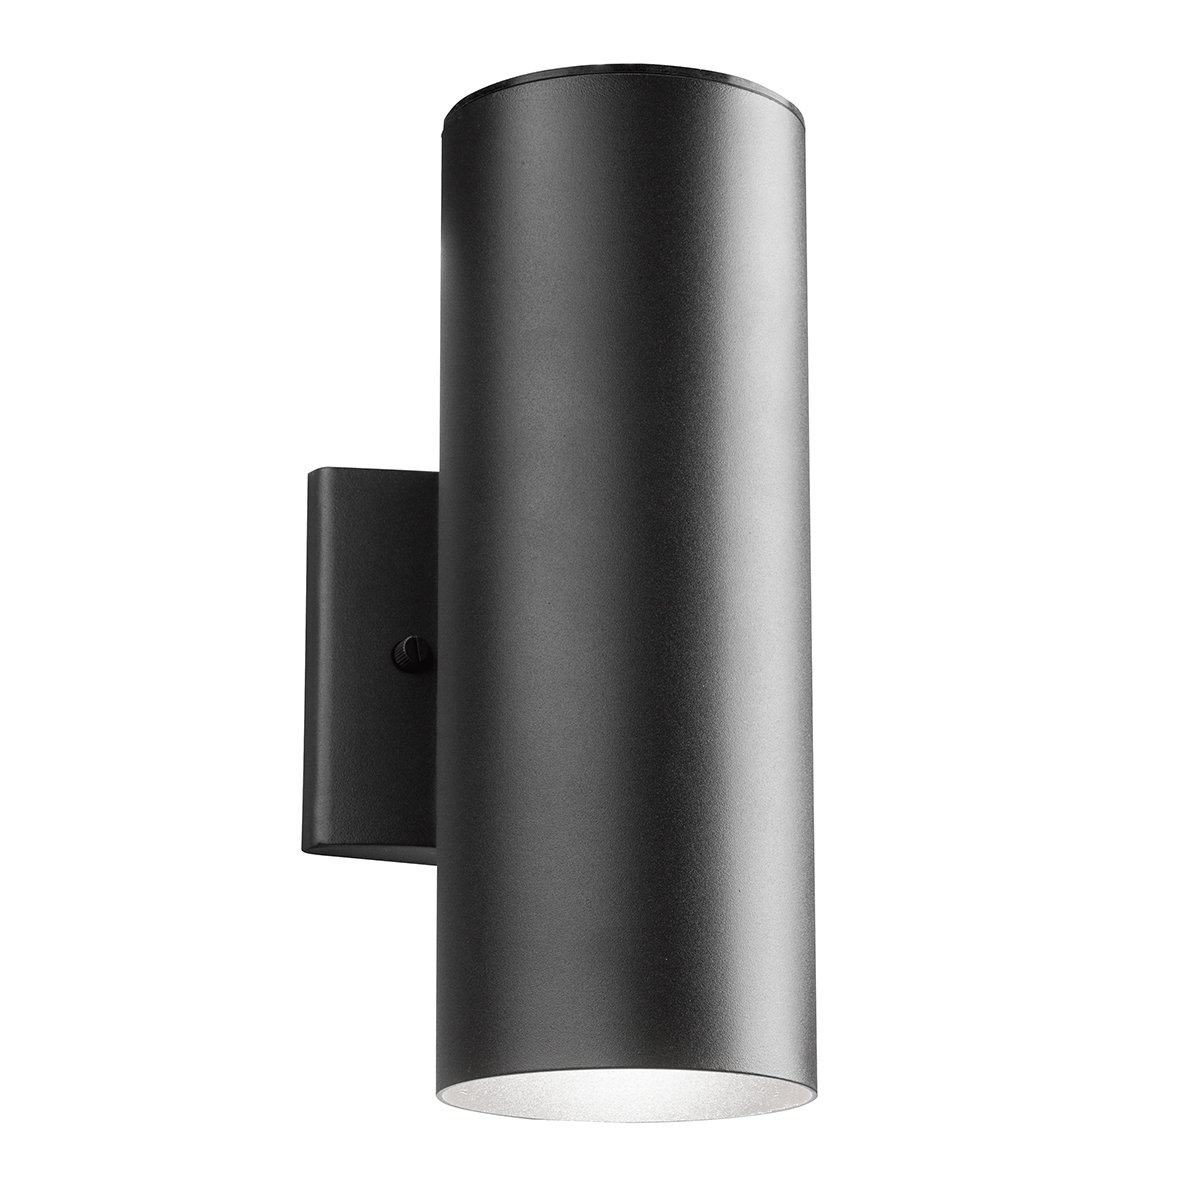 Kichler 11251BKT30 LED Outdoor Wall Mount - - Amazon.com